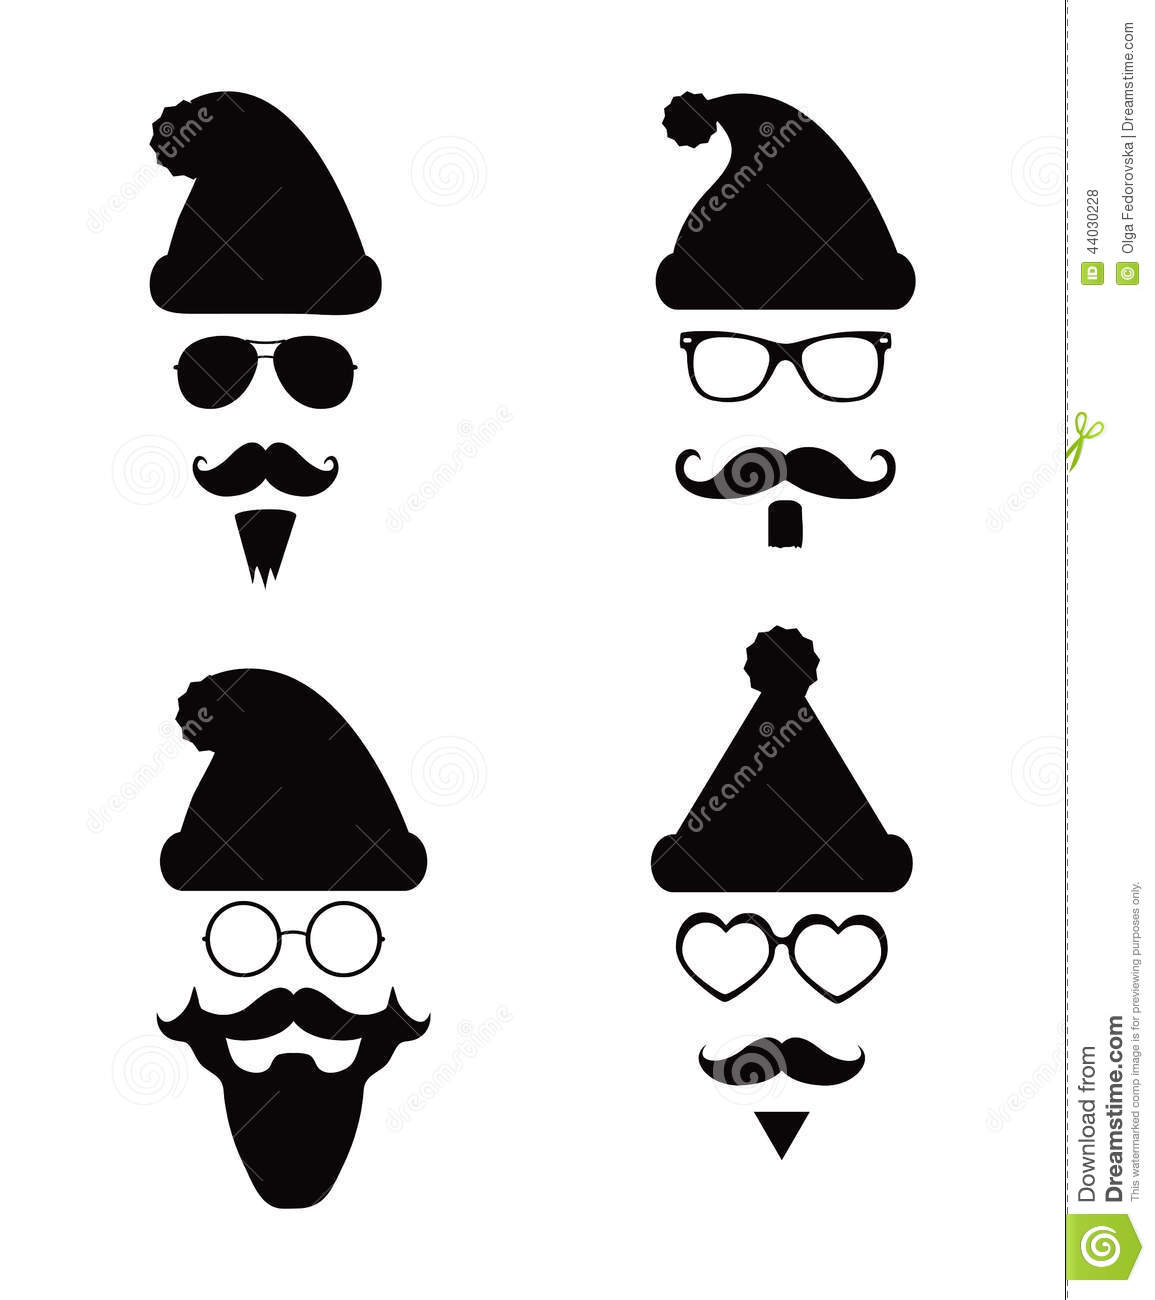 Santa Klaus Fashion Silhouette Hipster Style Stock Vector